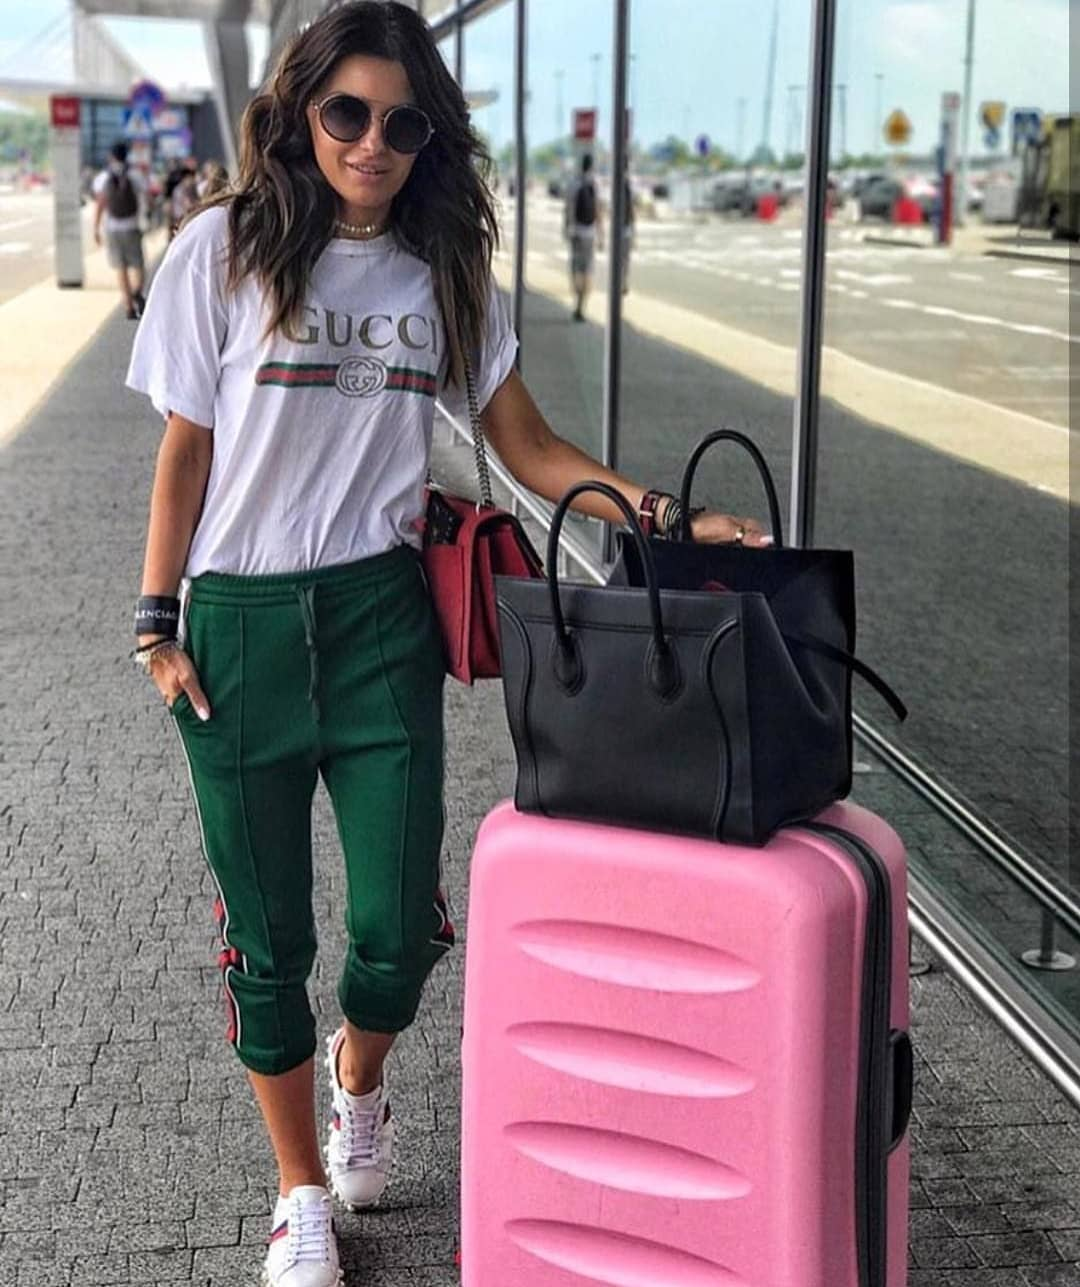 Green Jogger Pants, White Tee And White Kicks For Airport Casual Summer 2020